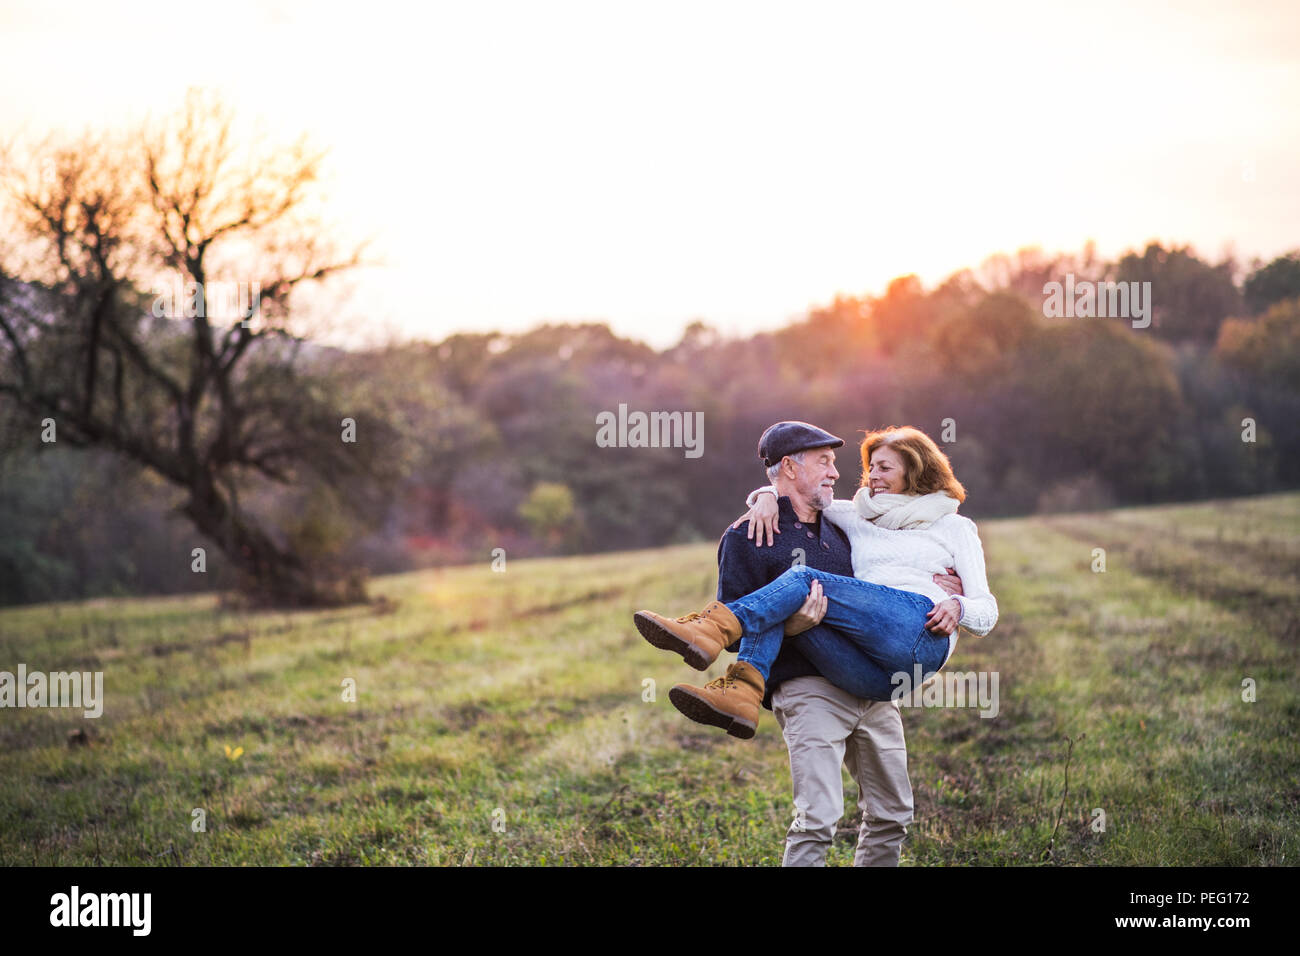 Senior man carrying a woman in his arms in an autumn nature at sunset. - Stock Image